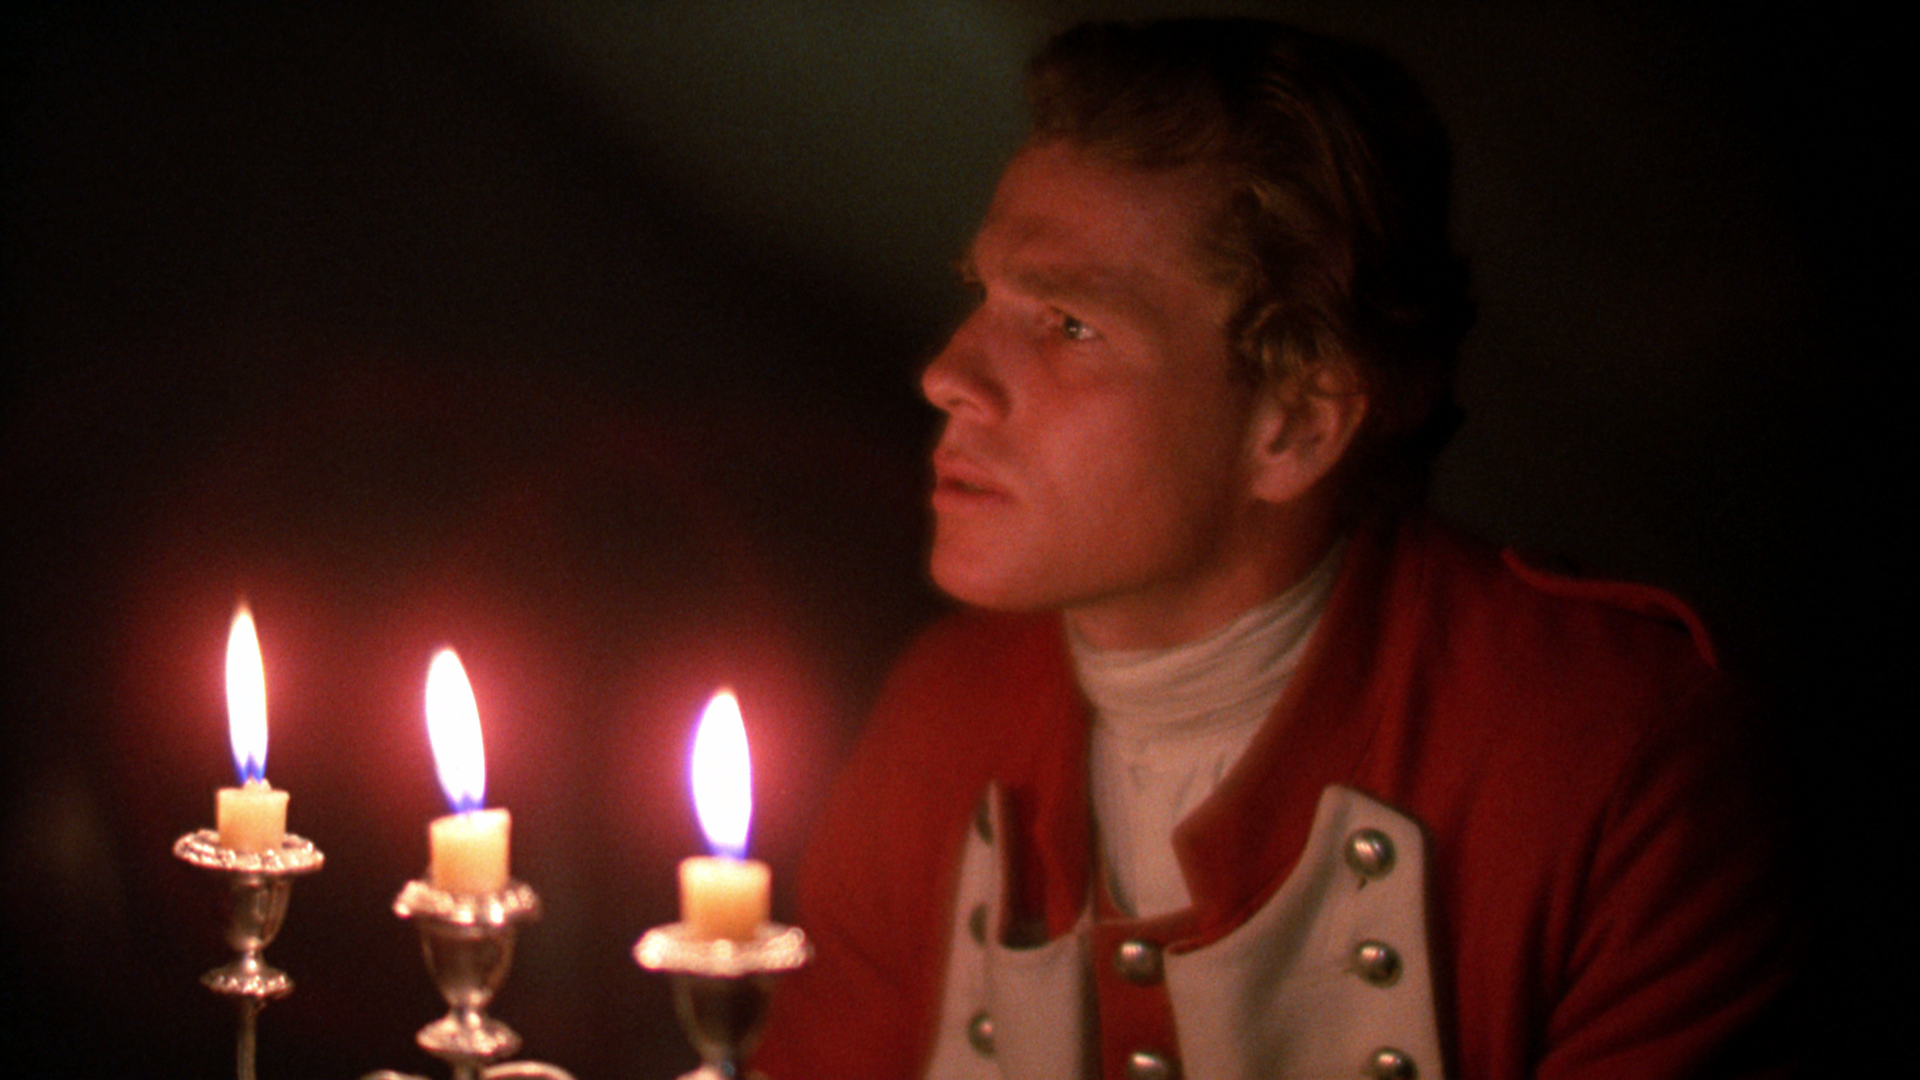 BARRY LYNDON PIC 4 -® 1975 Warner Bros. All Rights Reserved